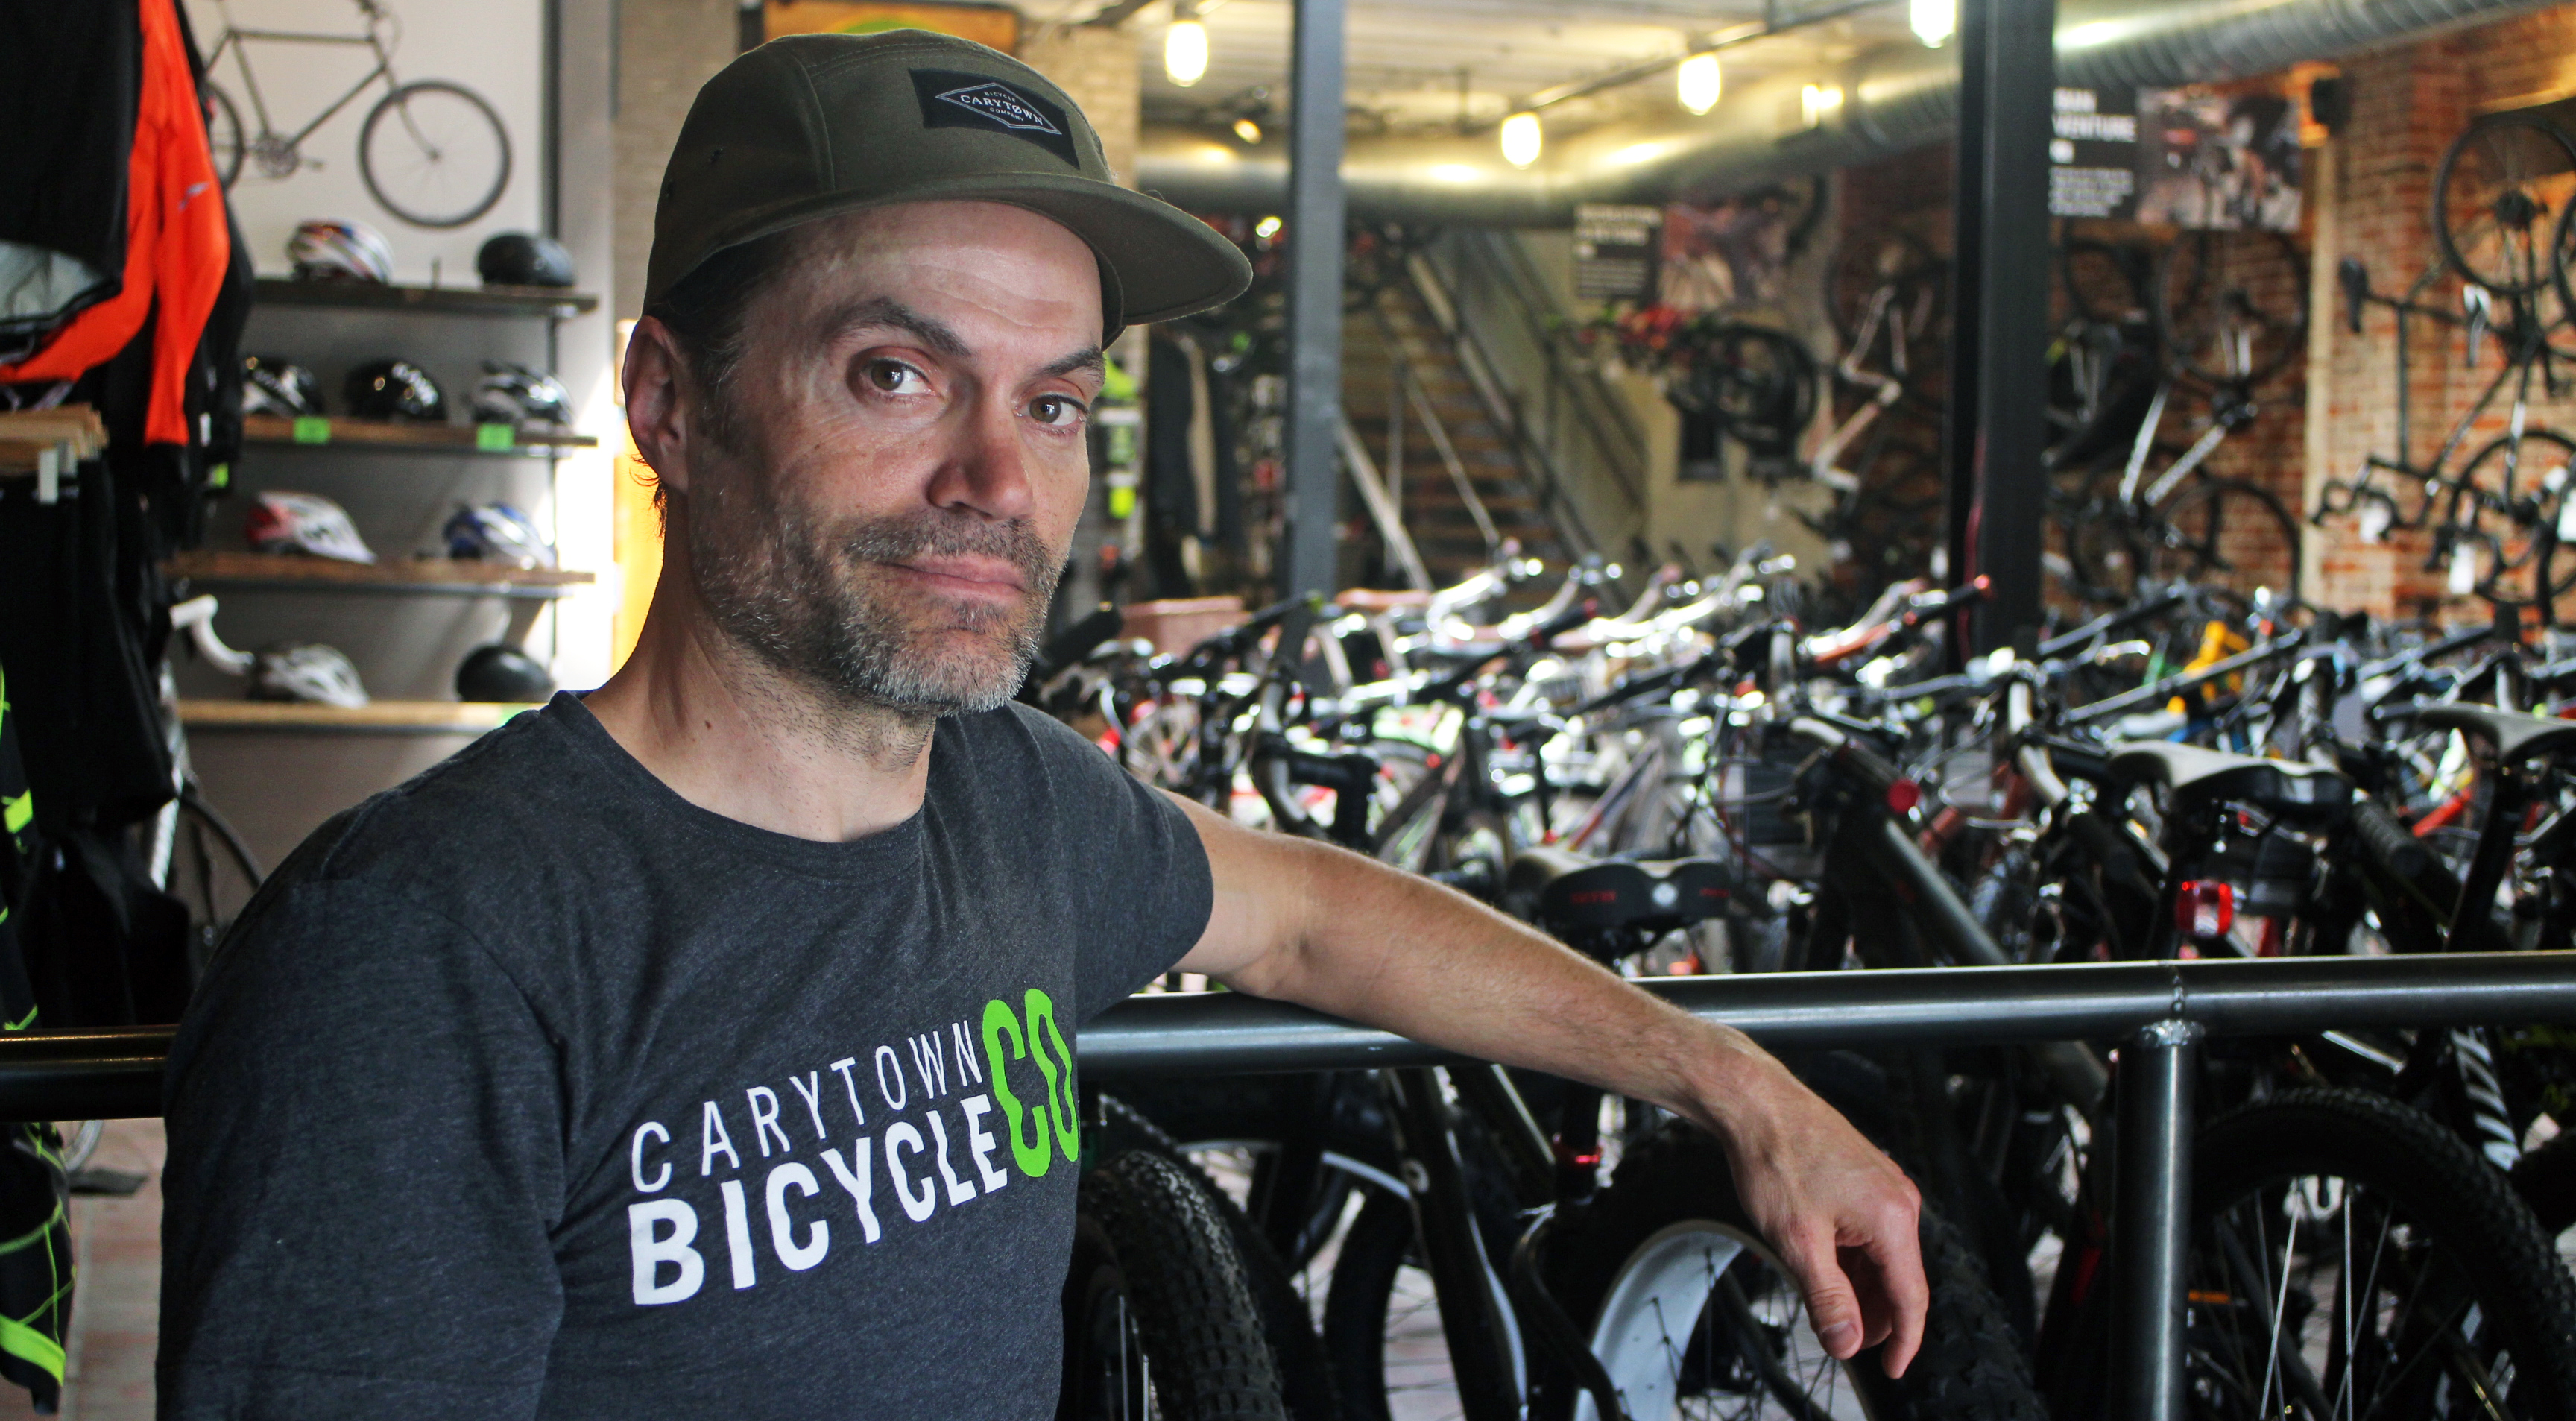 Bike Store Richmond Carytown Bike Shop Kicks Off New Location Richmond Bizsense